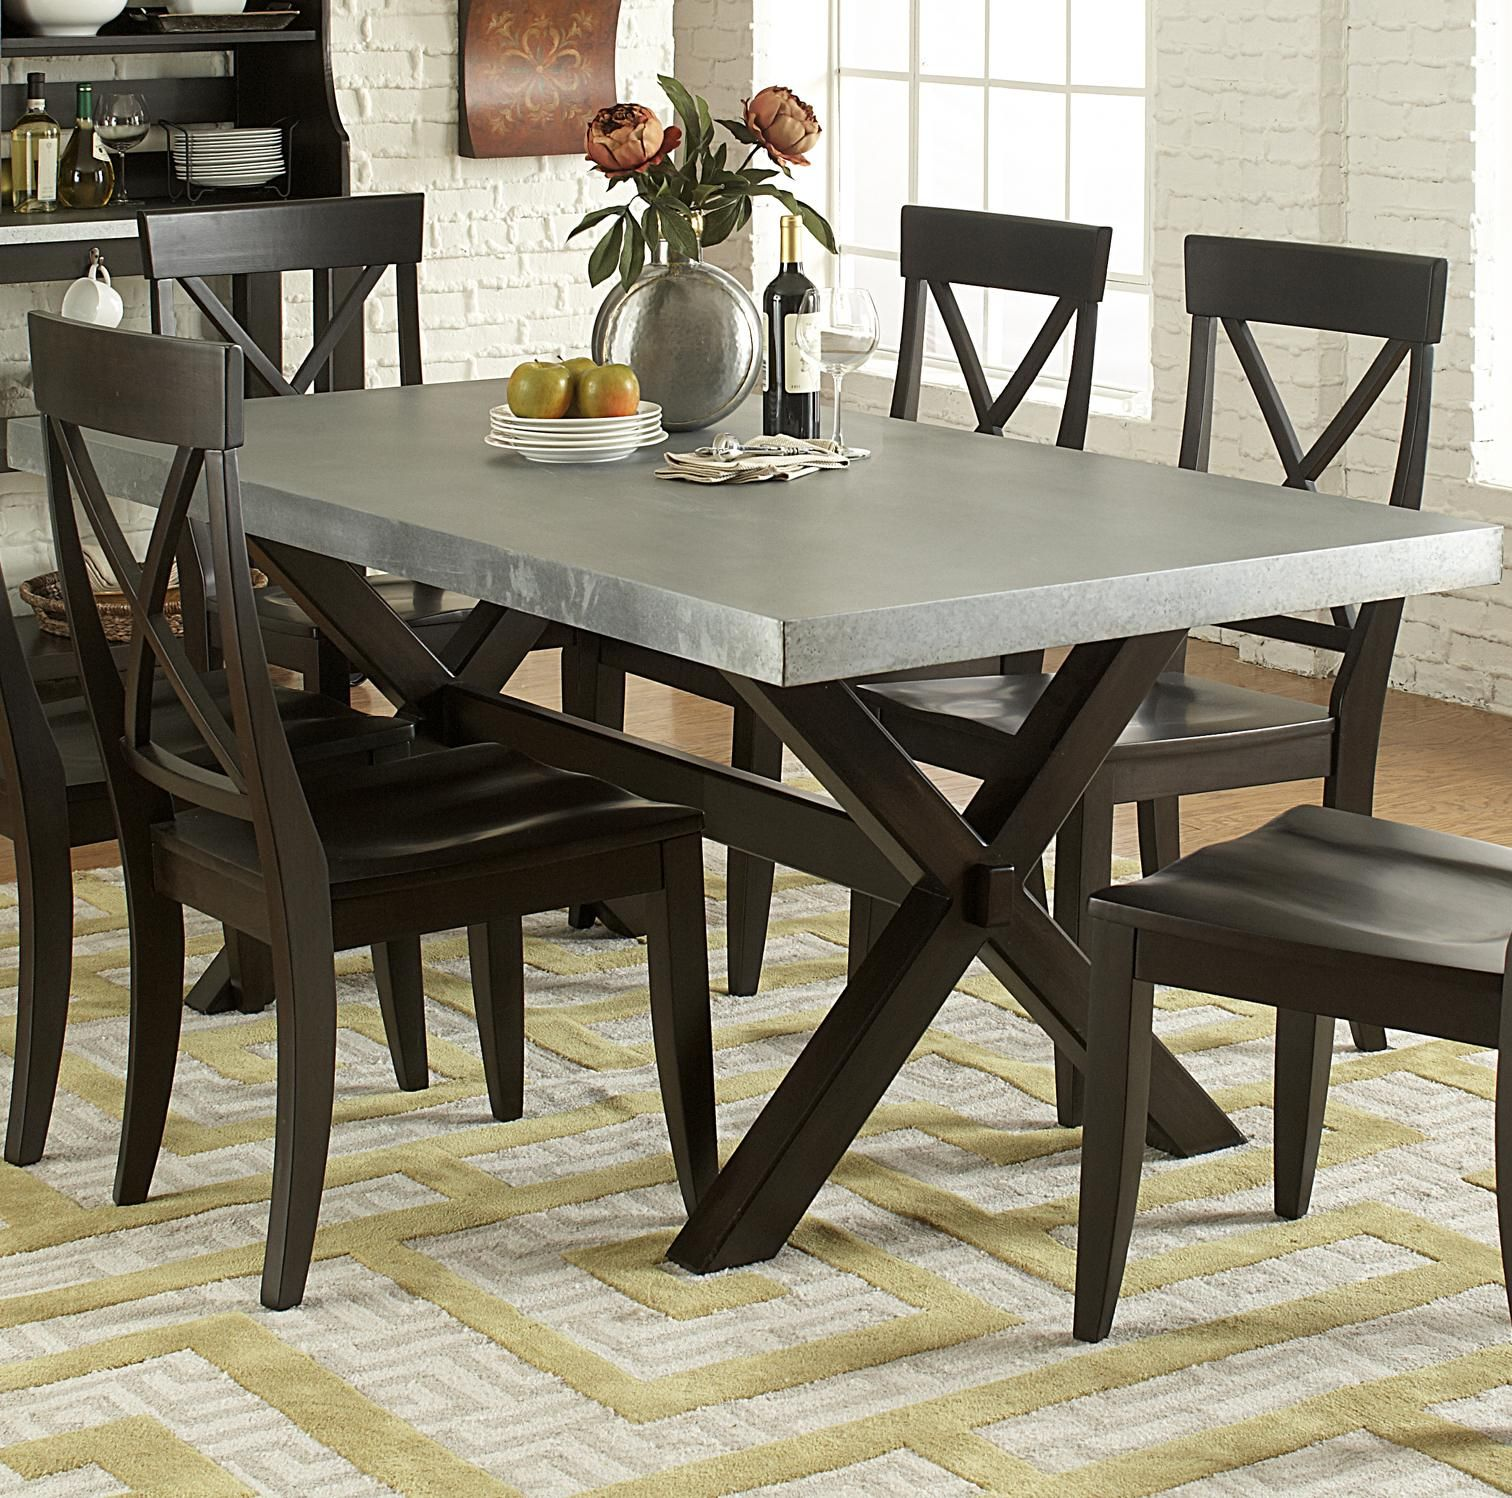 Keaton Ii Rectangle Trestle Table By Liberty Furniture Hudson S 76